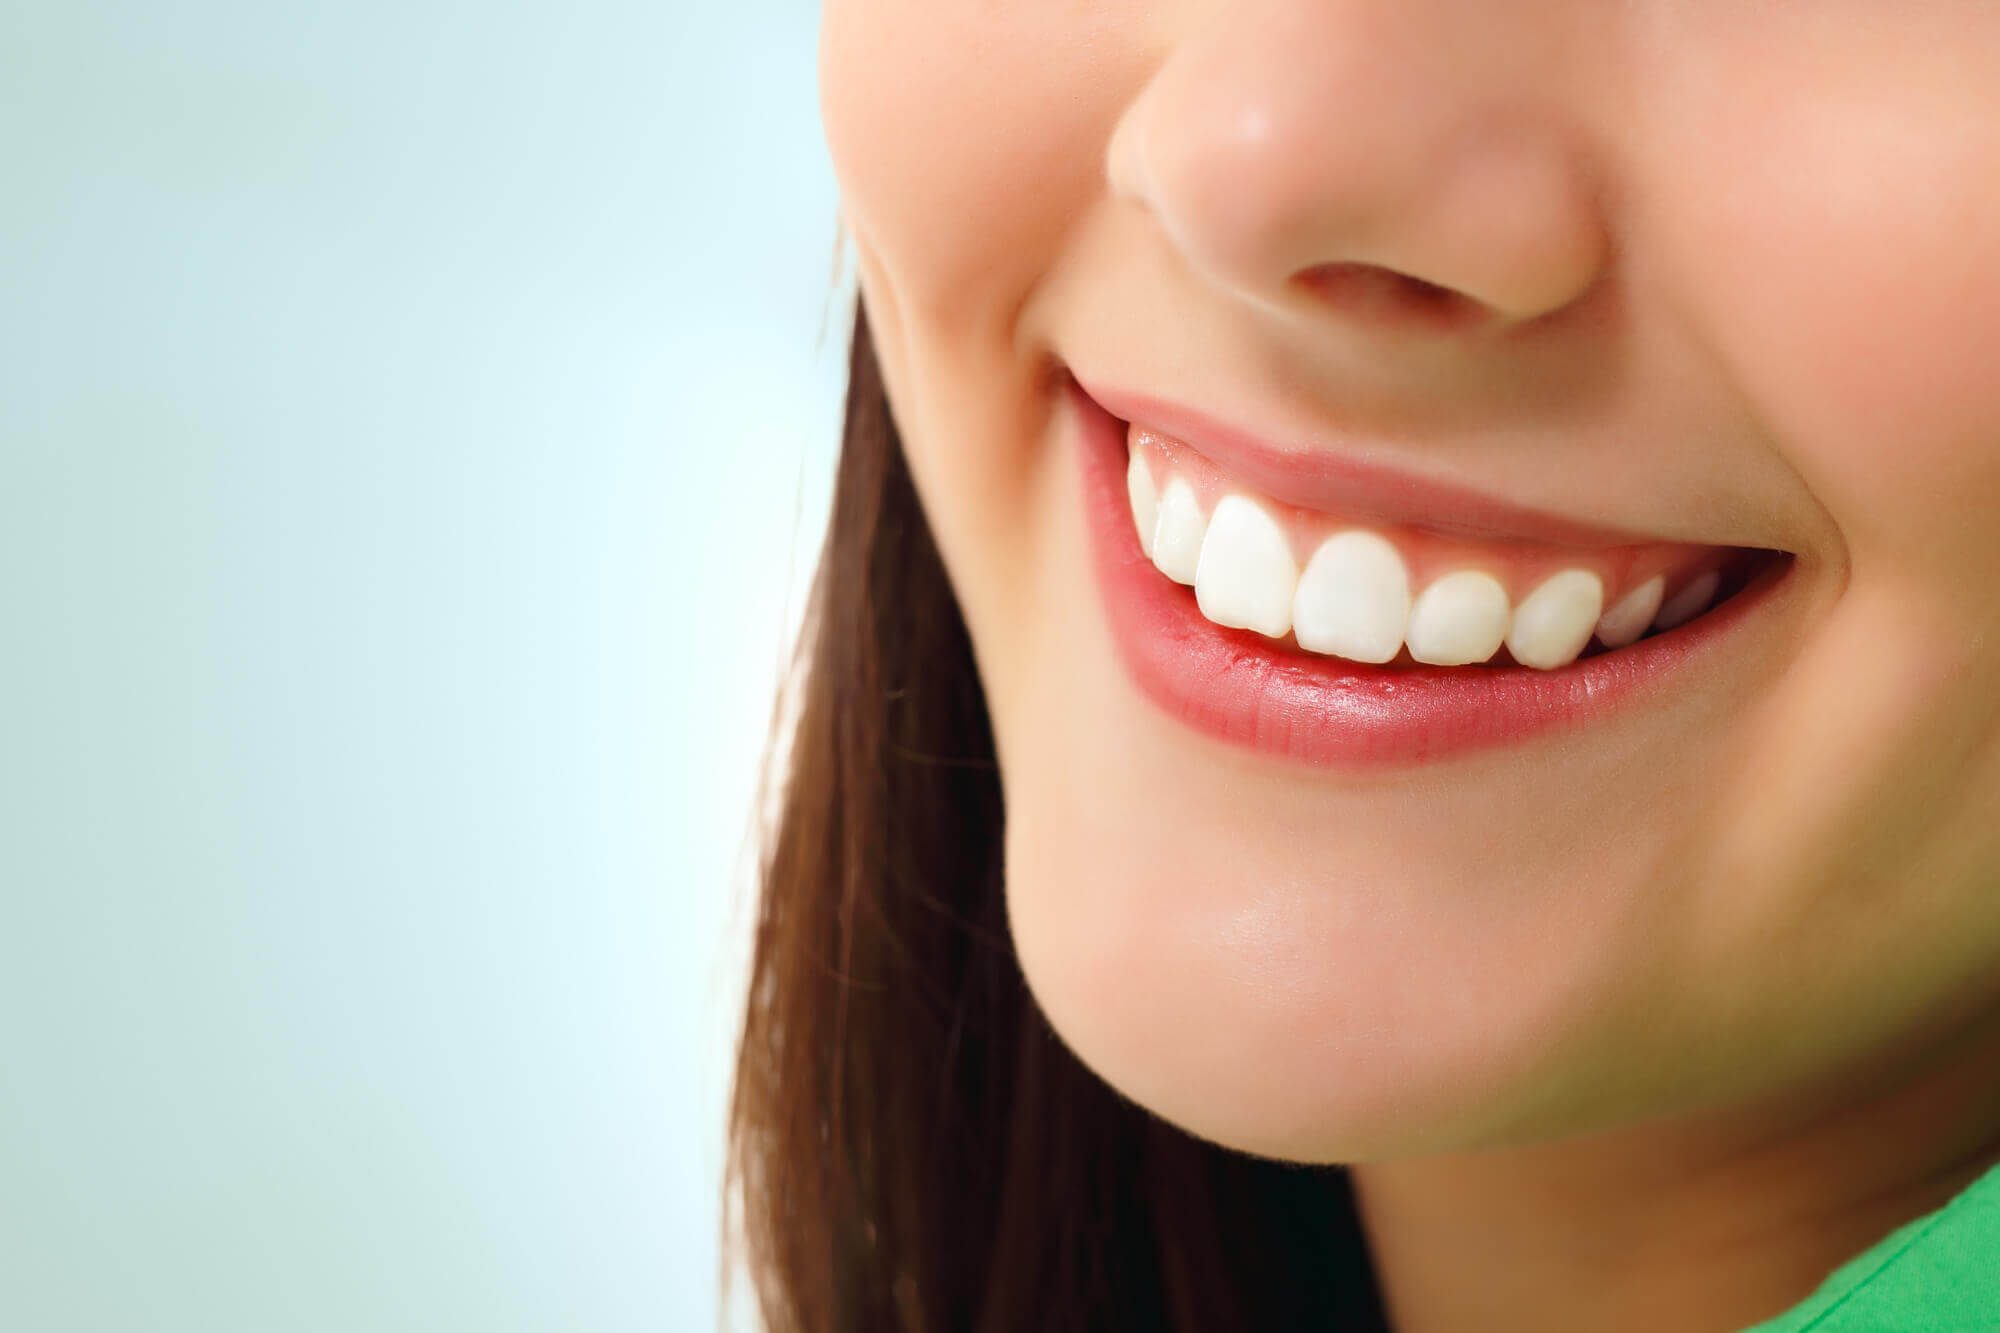 where is the best aventura invisalign?